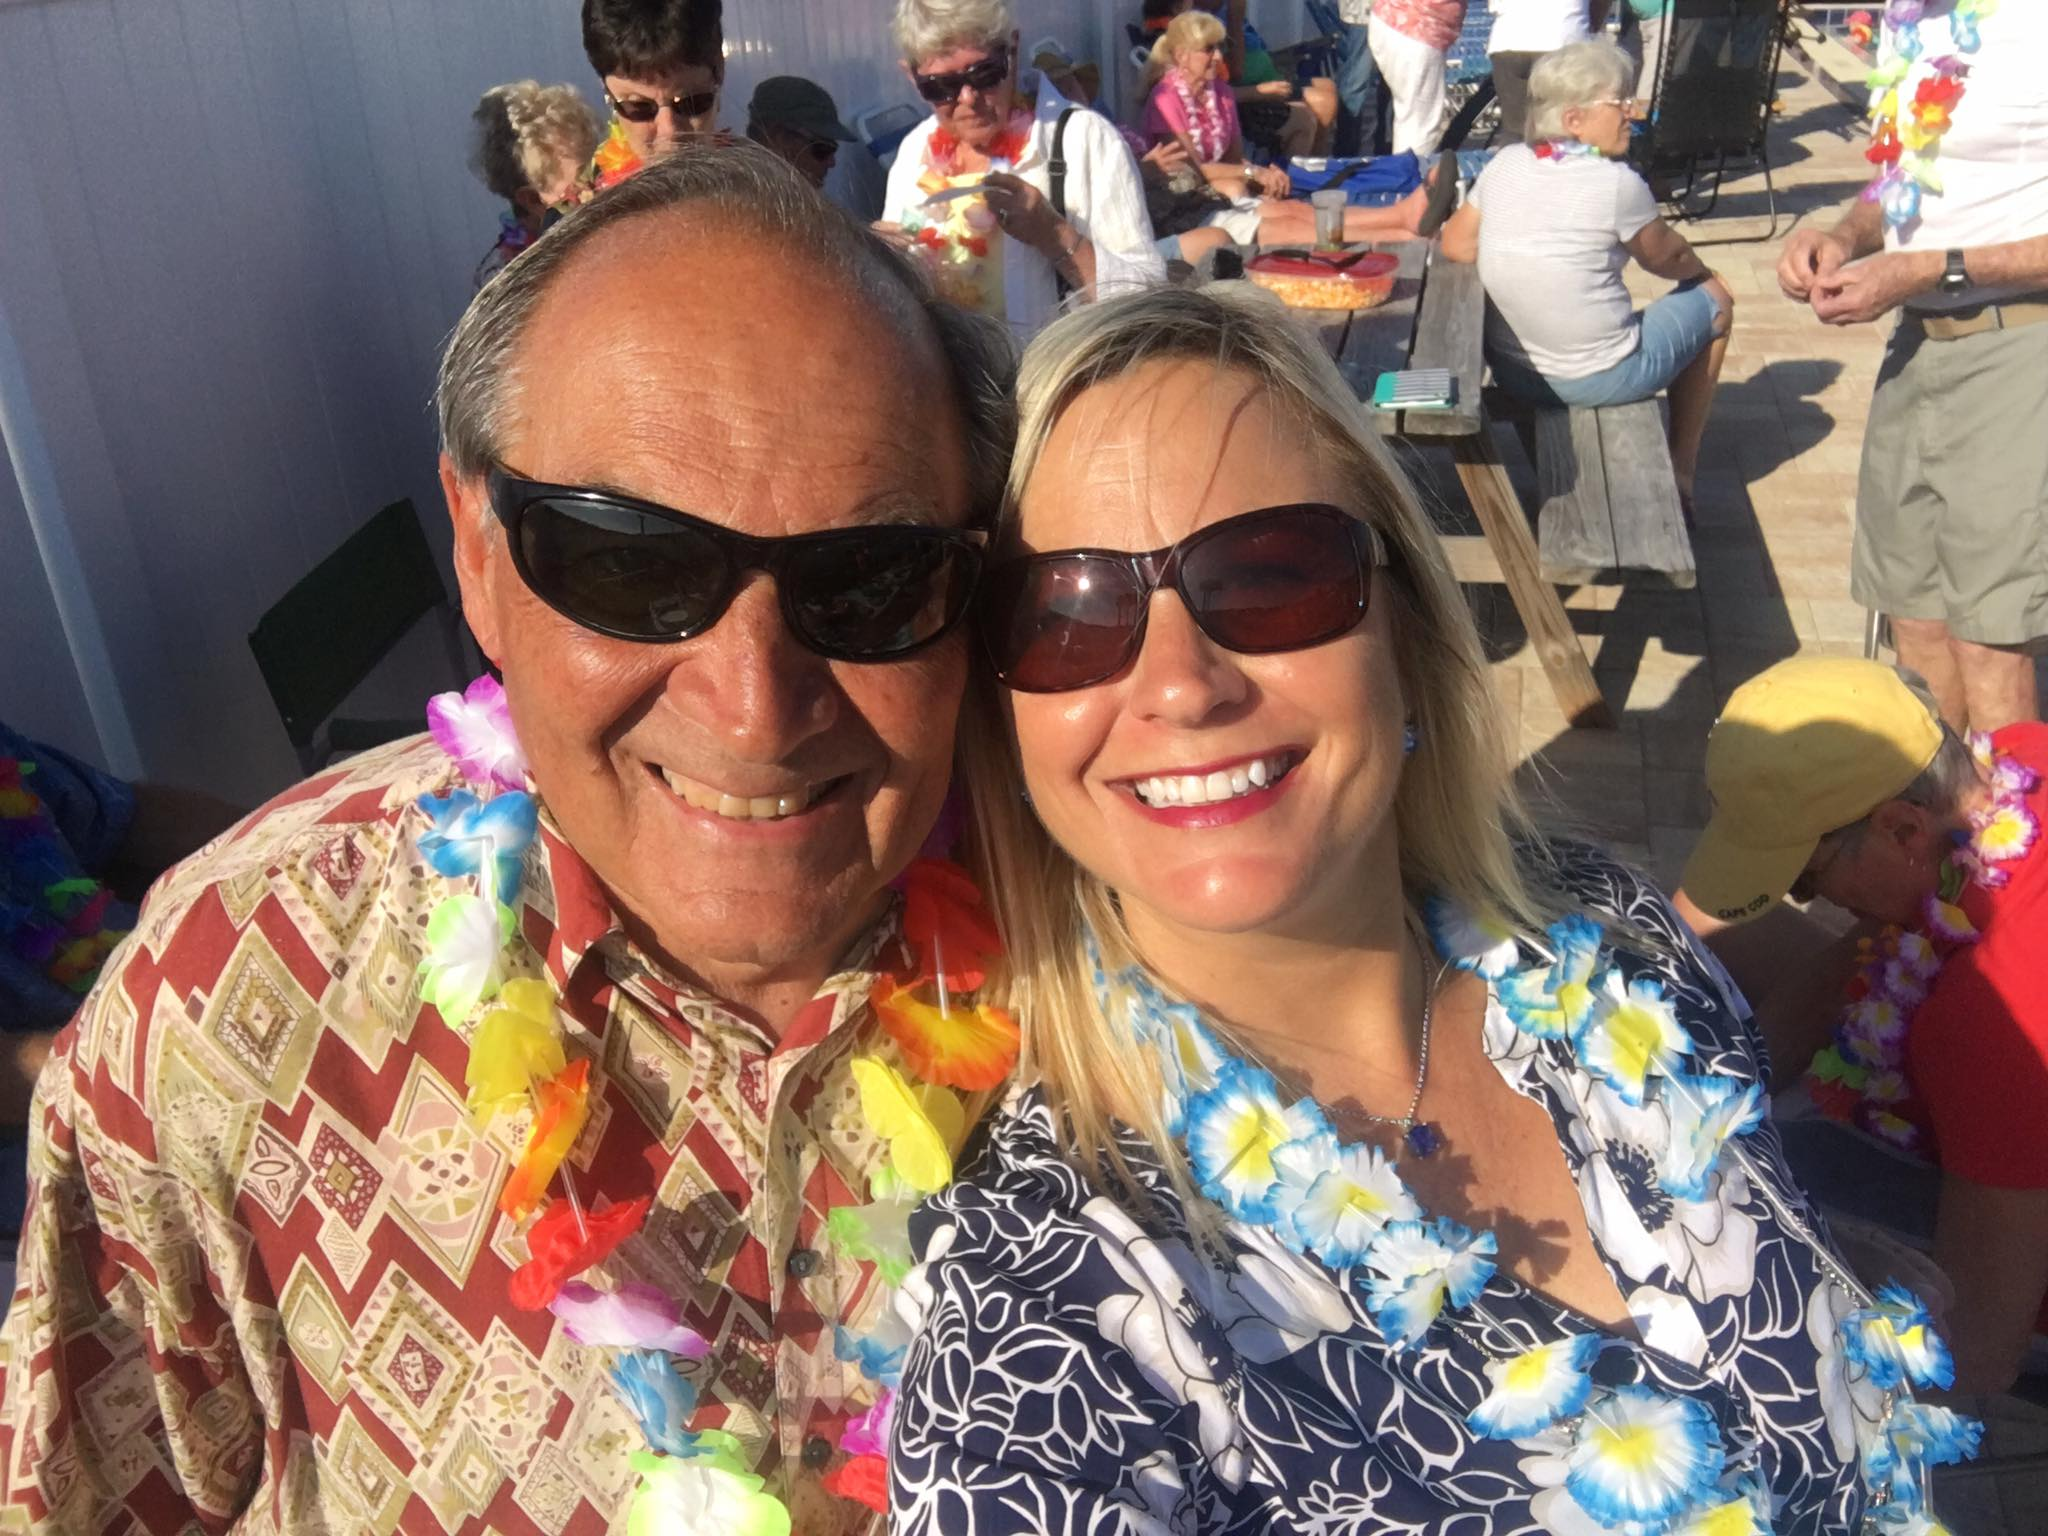 man and woman smiling wearing leis